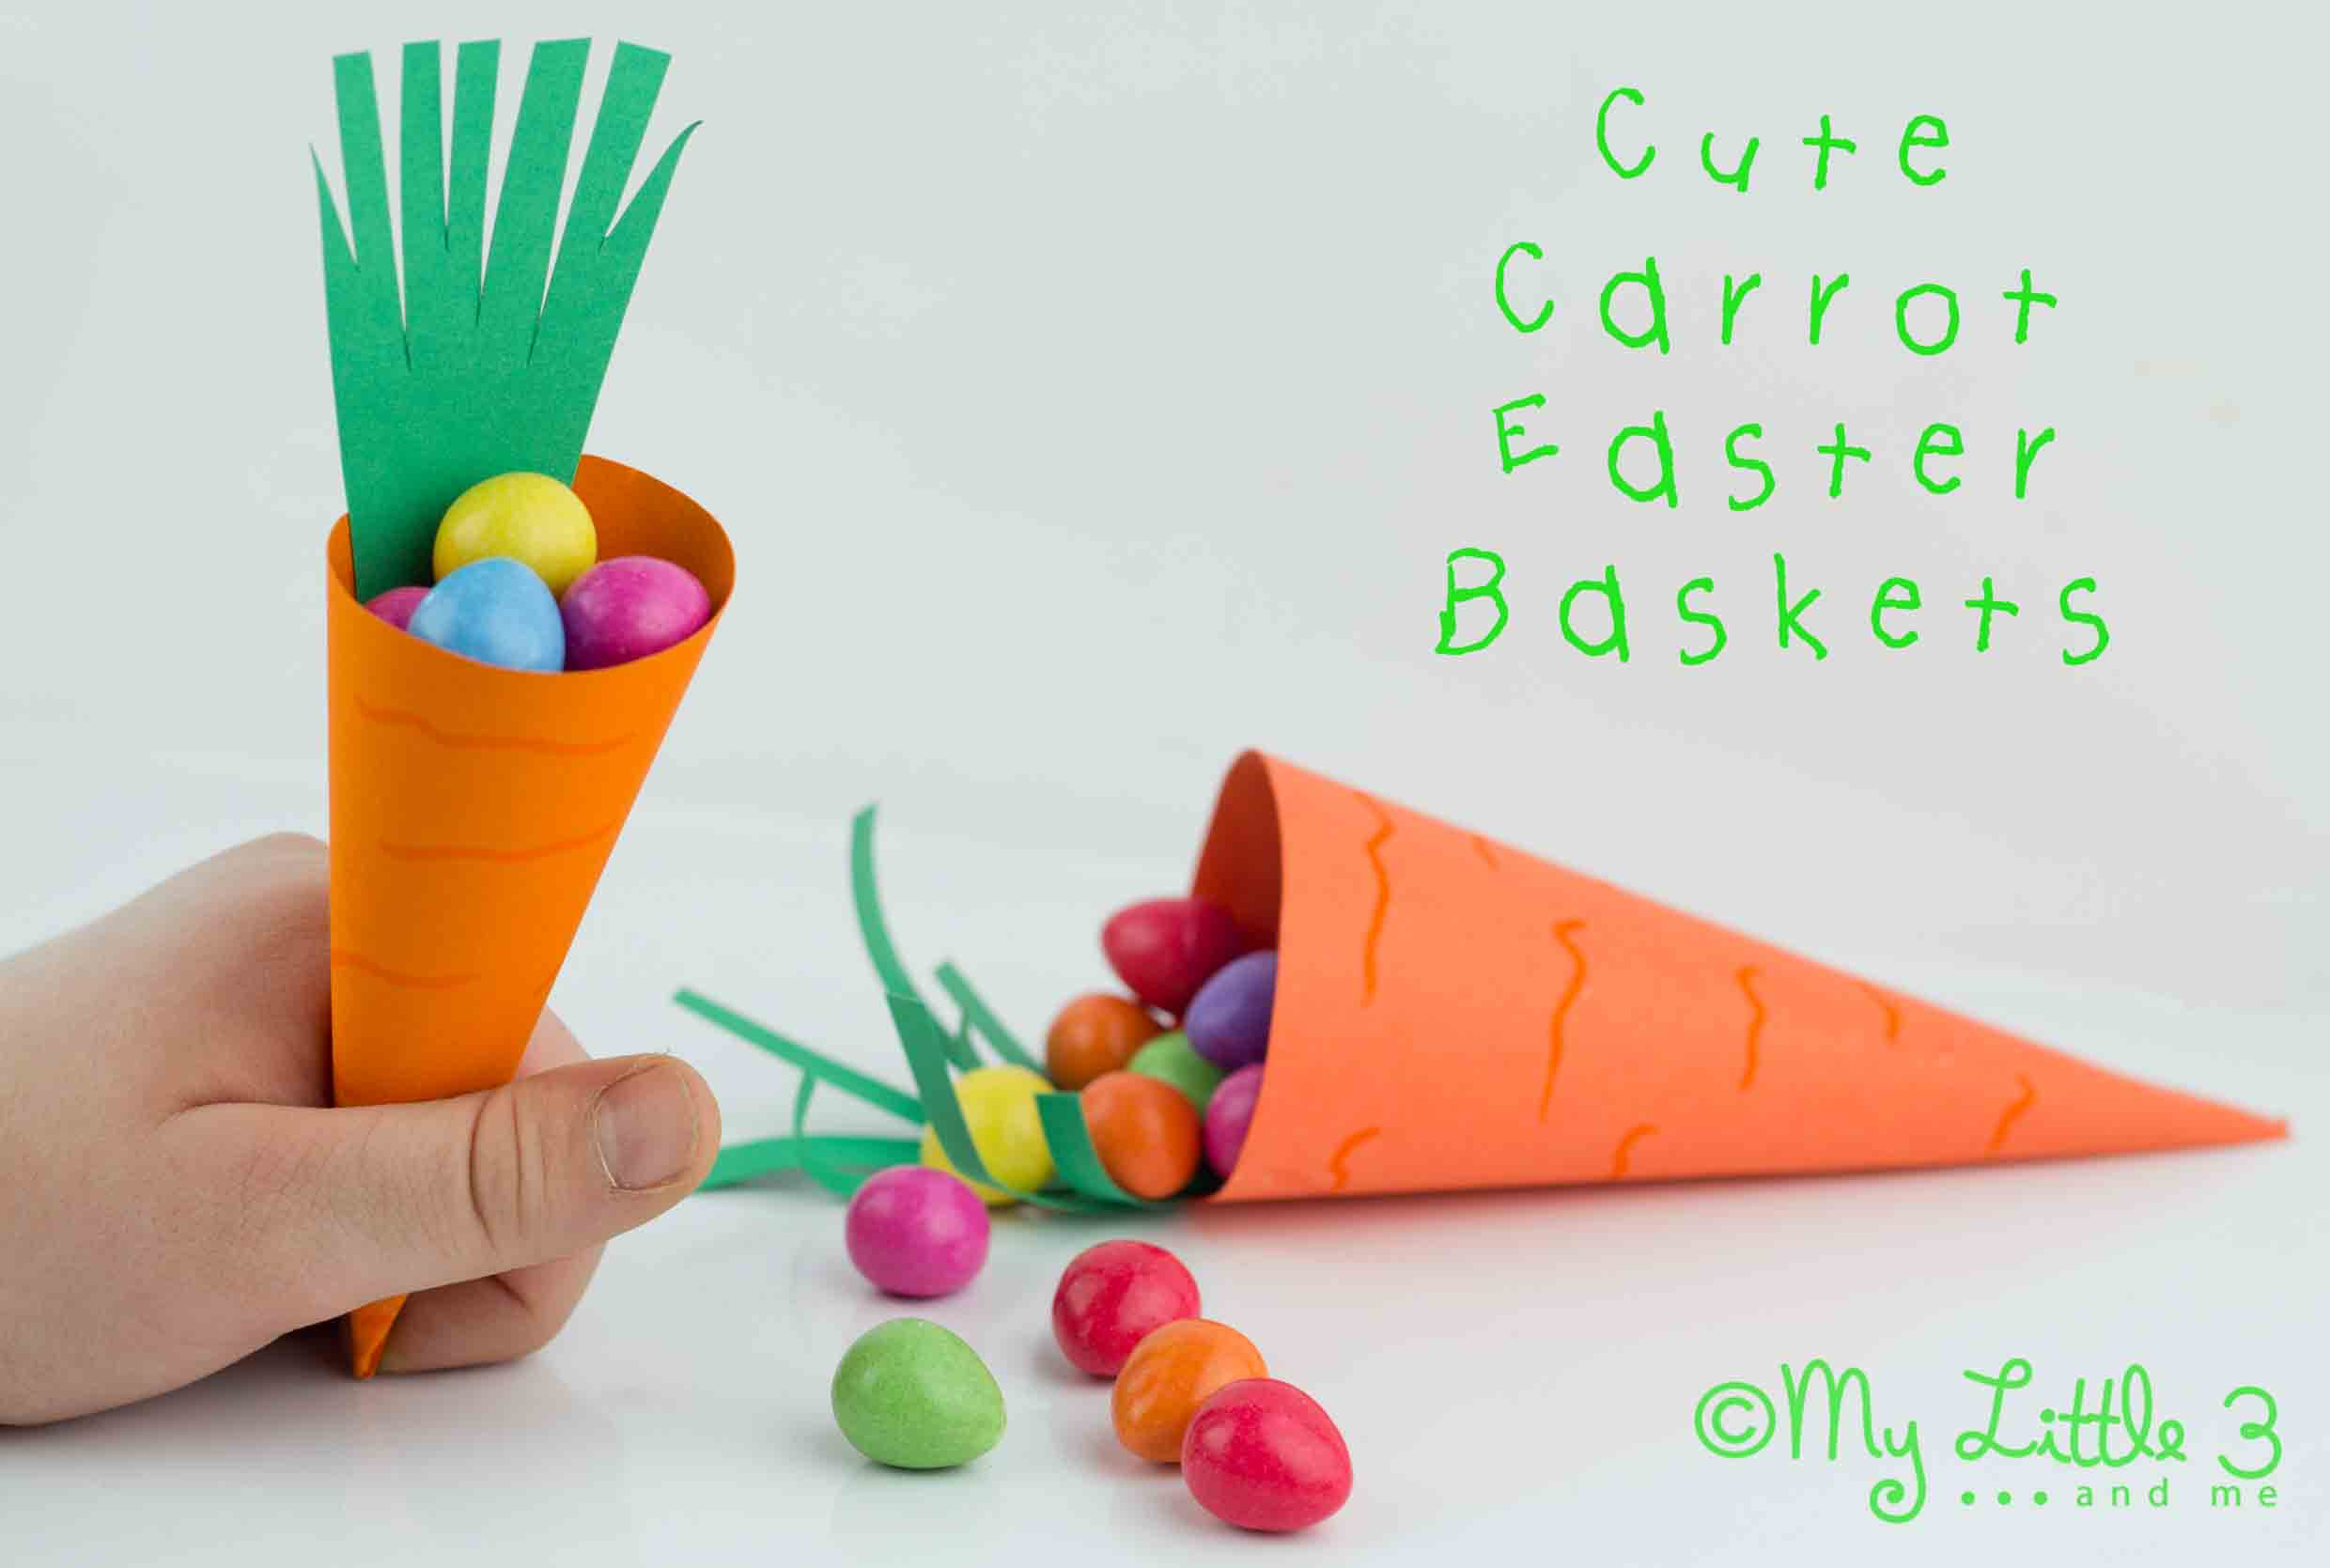 Cute-Carrot-Easter-Baskets